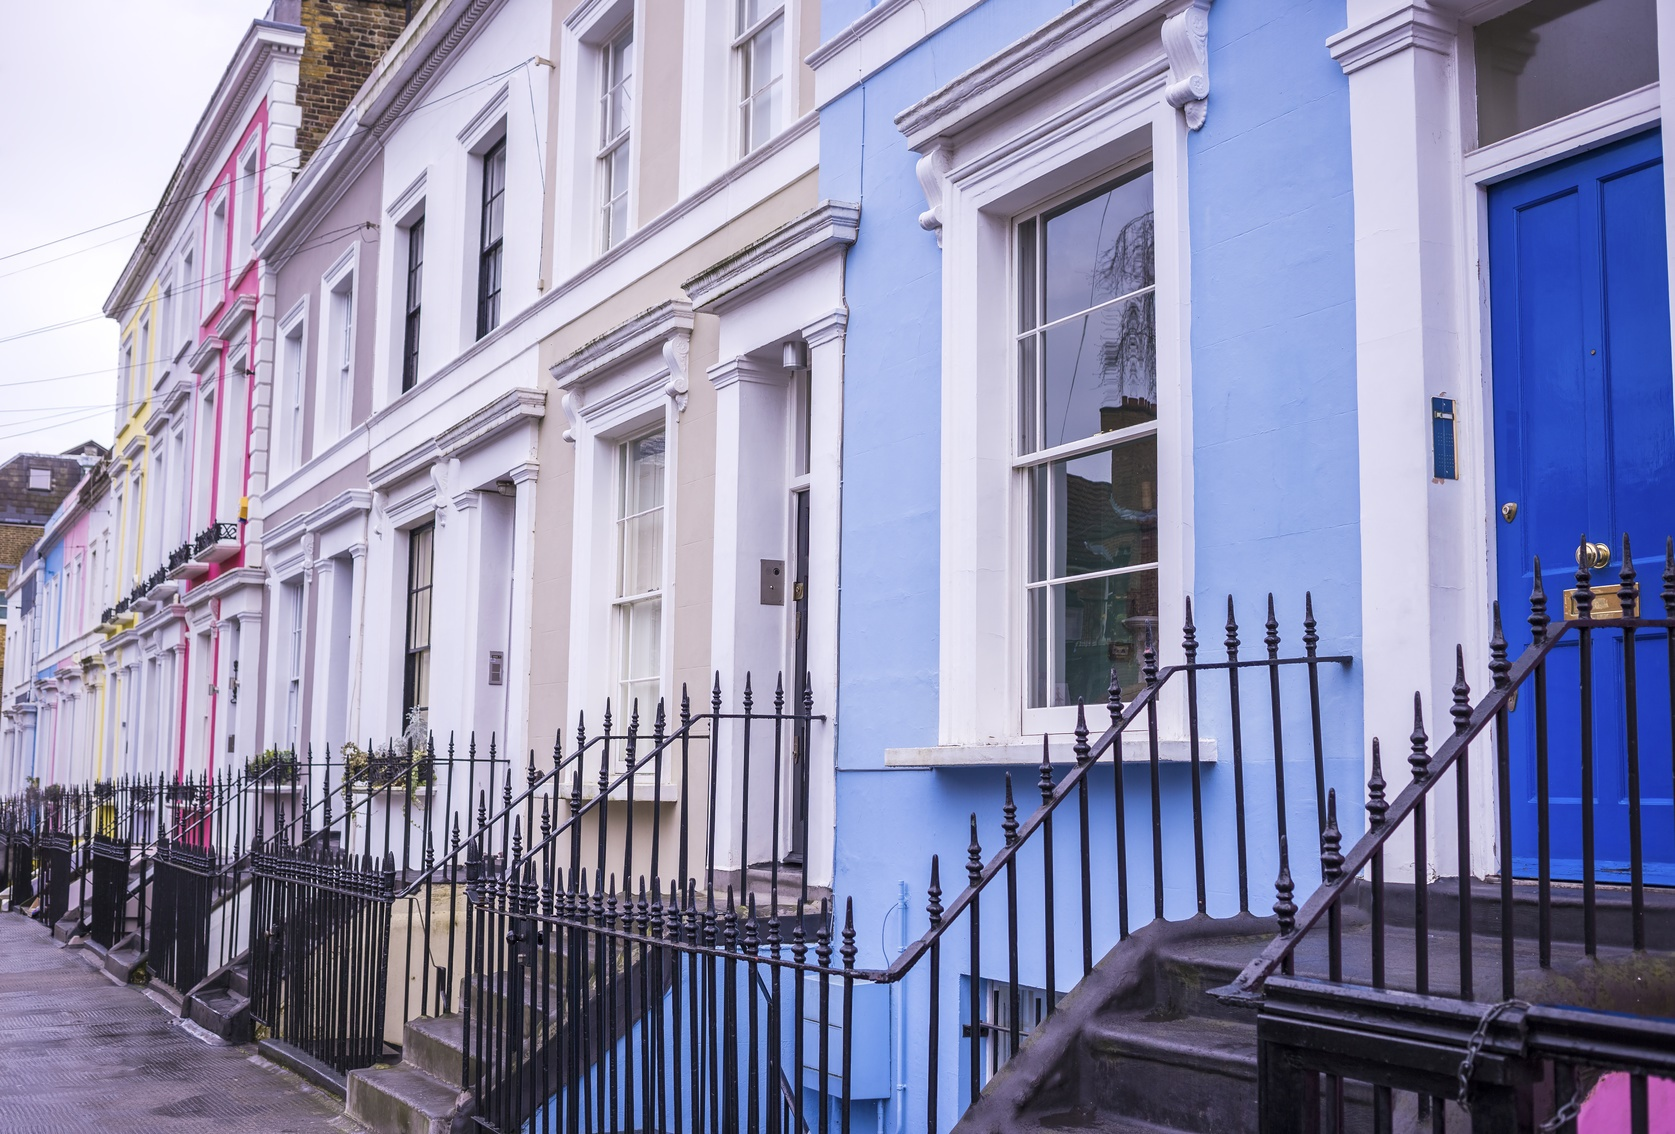 Traditional colourful houses at Notting Hill district near Portobello road - London, UK